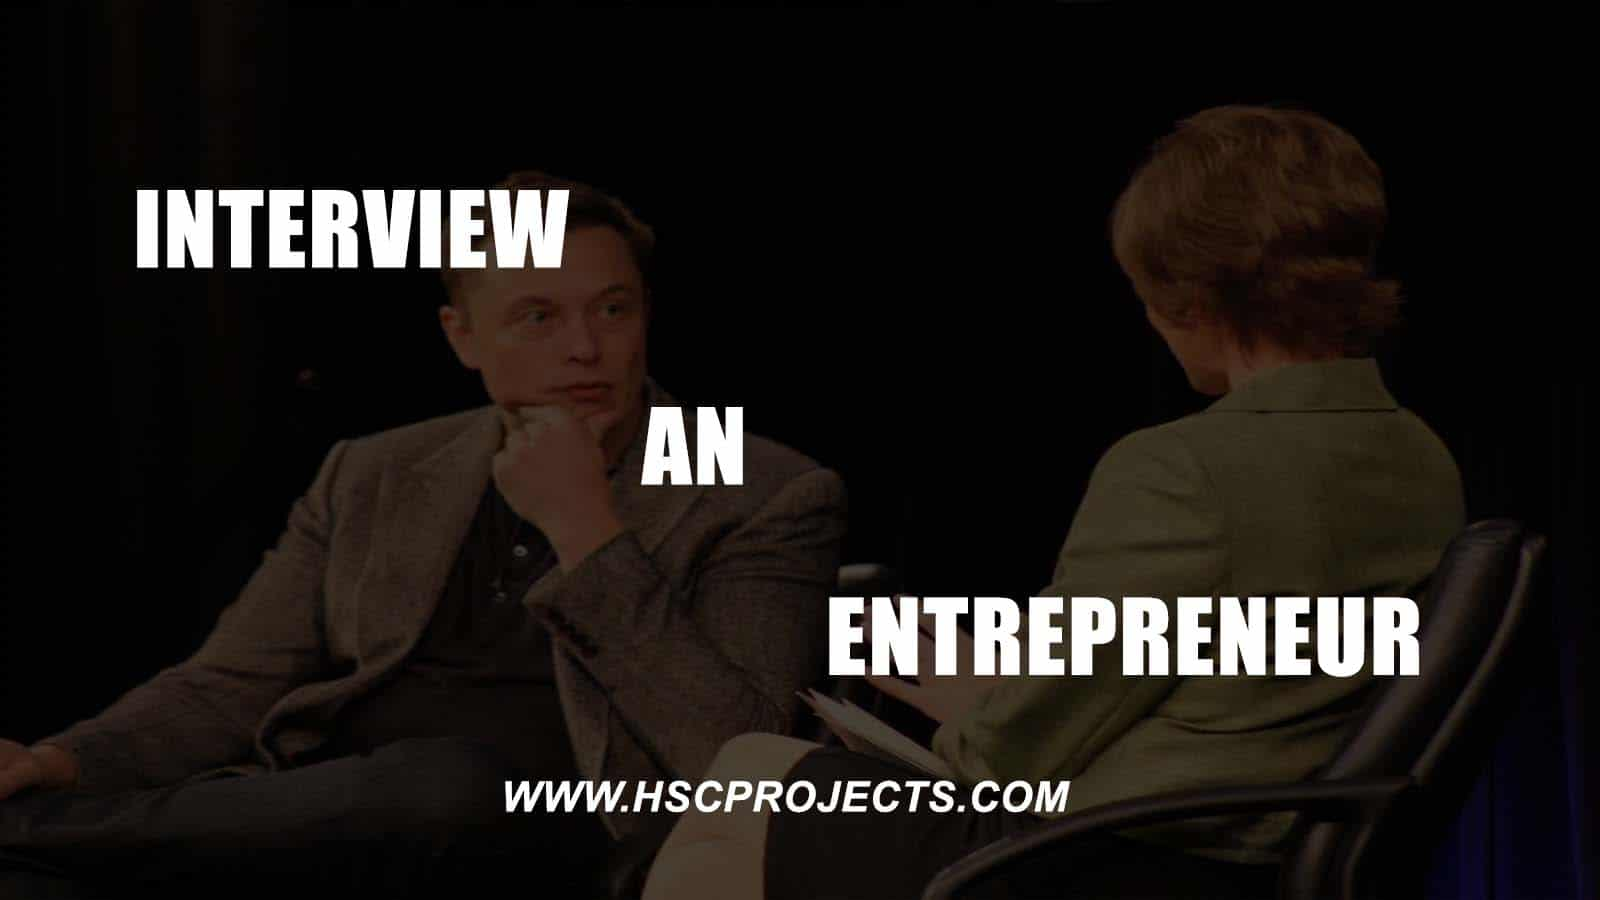 Interview an Entrepreneur, HSC Projects